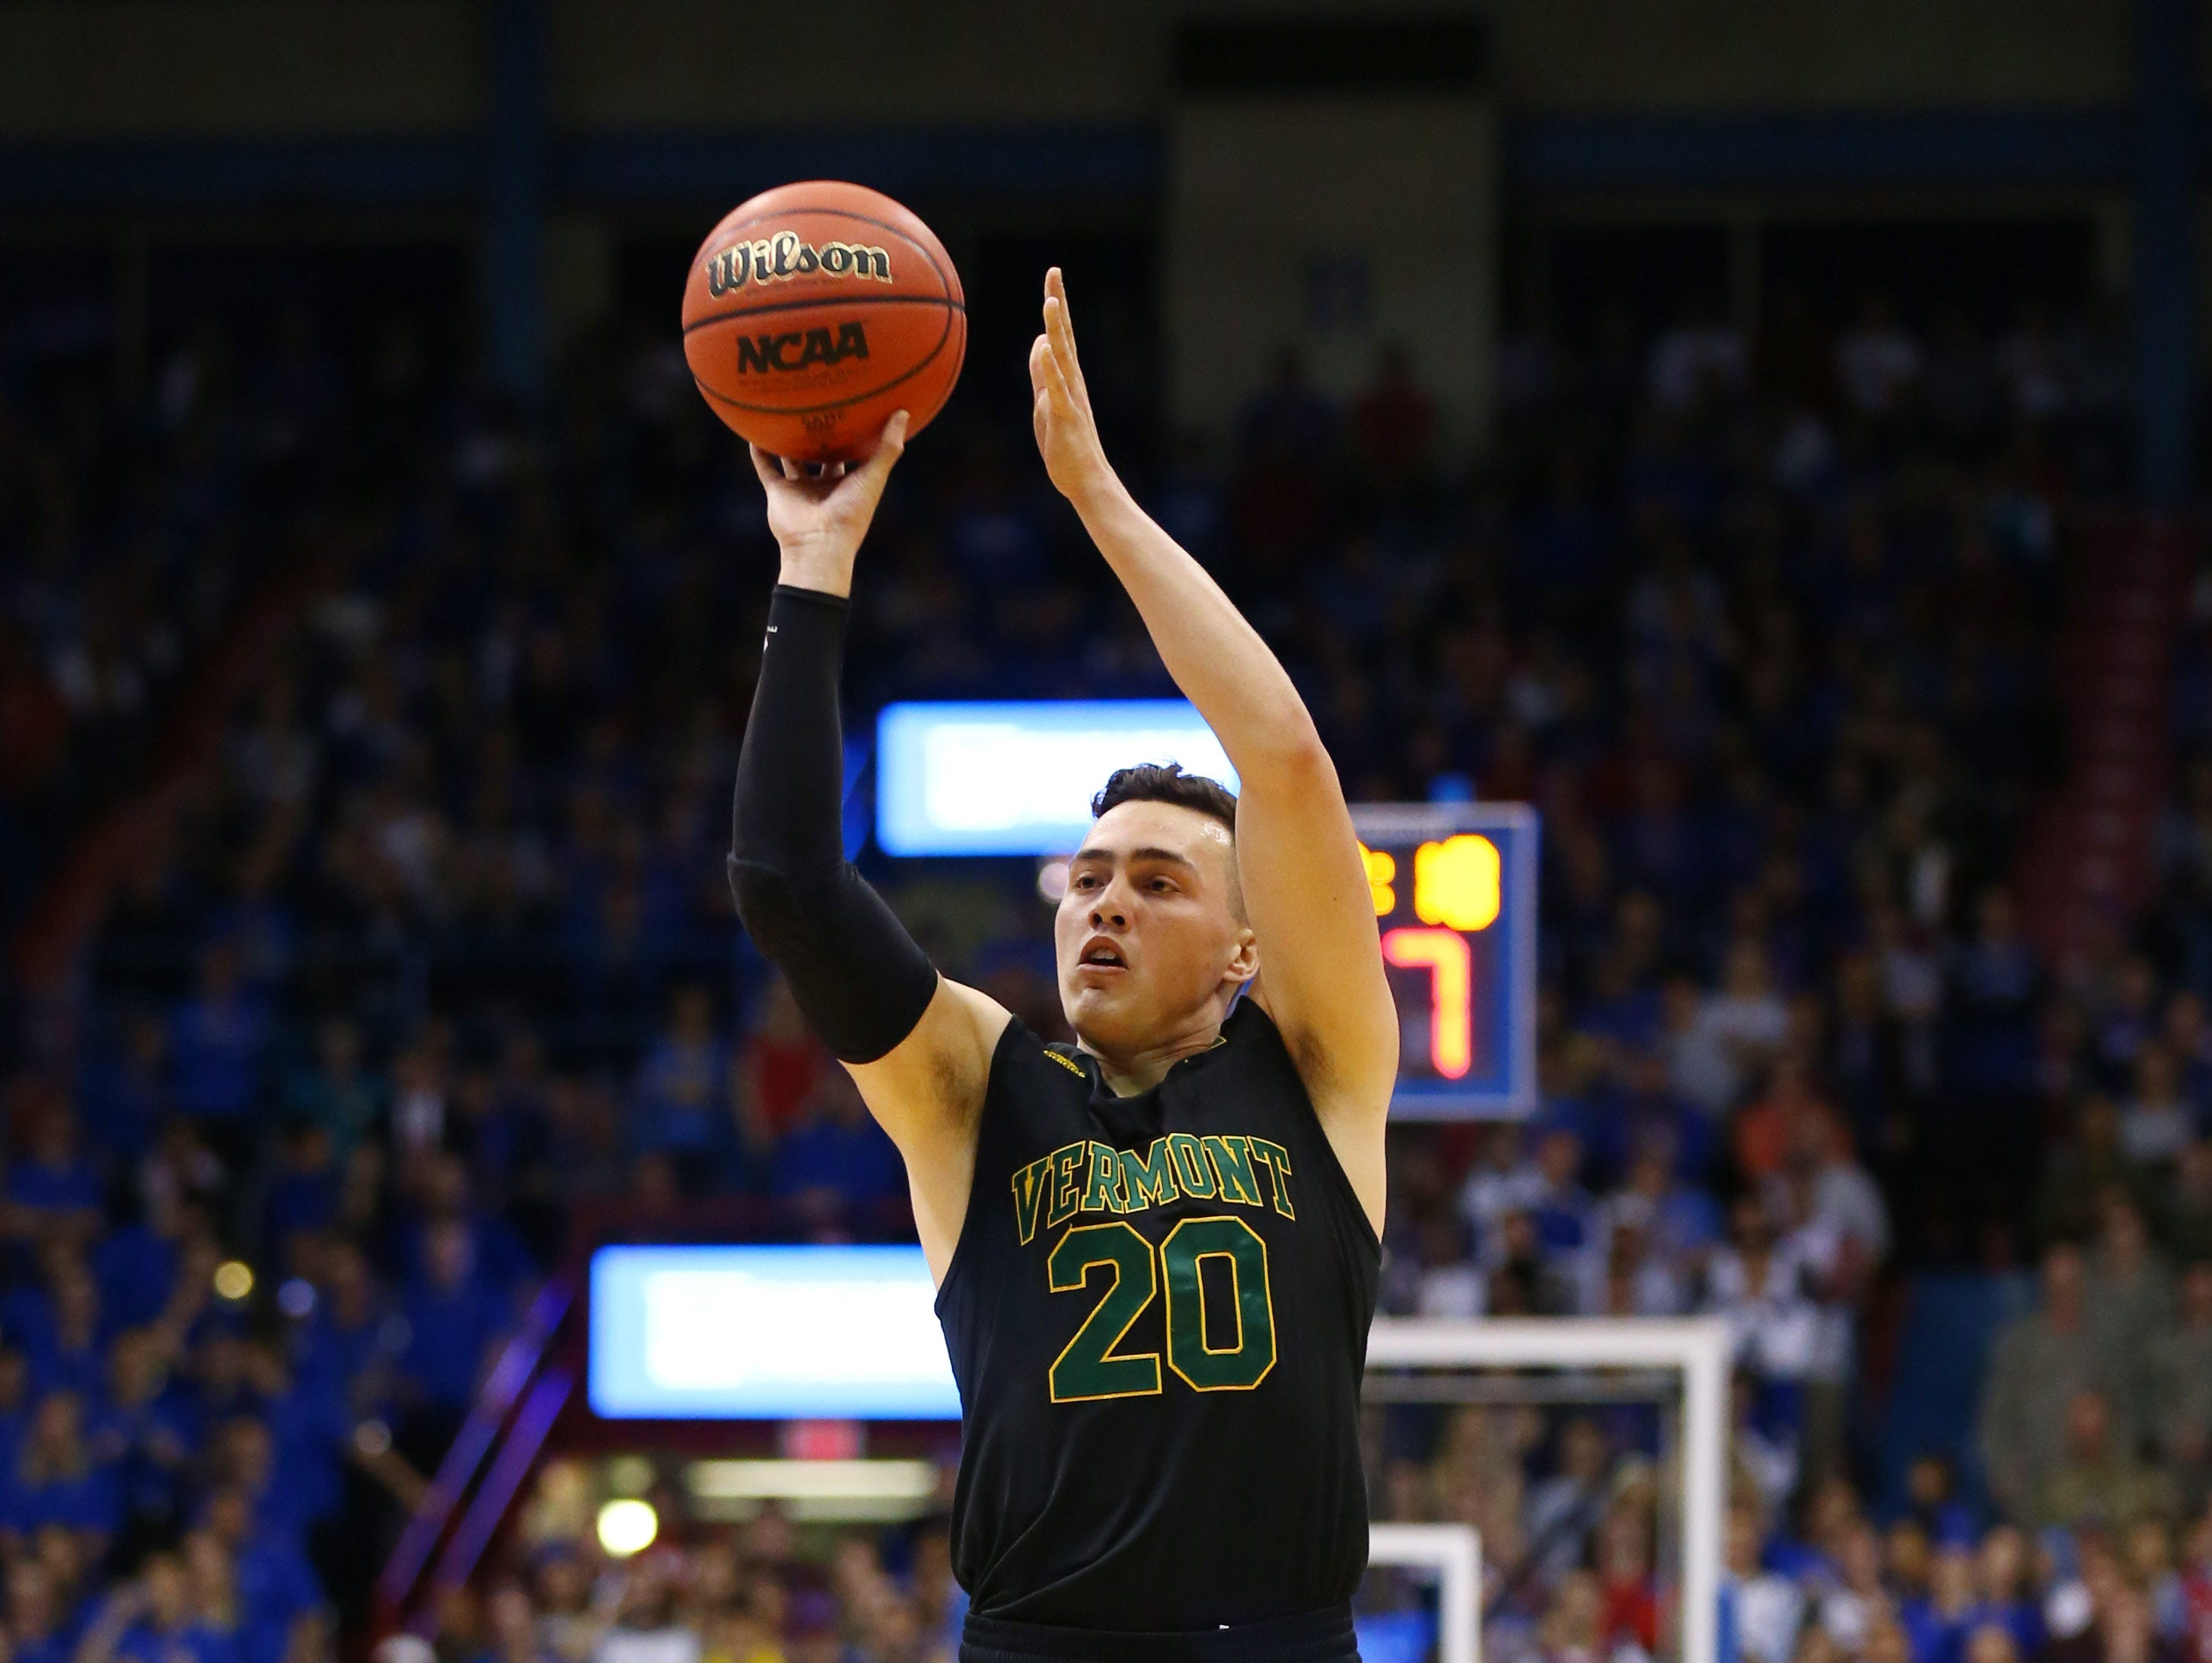 Nov 12, 2018; Lawrence, KS, USA; Vermont Catamounts guard Ernie Duncan (20) shoots against the Kansas Jayhawks in the first half at Allen Fieldhouse.